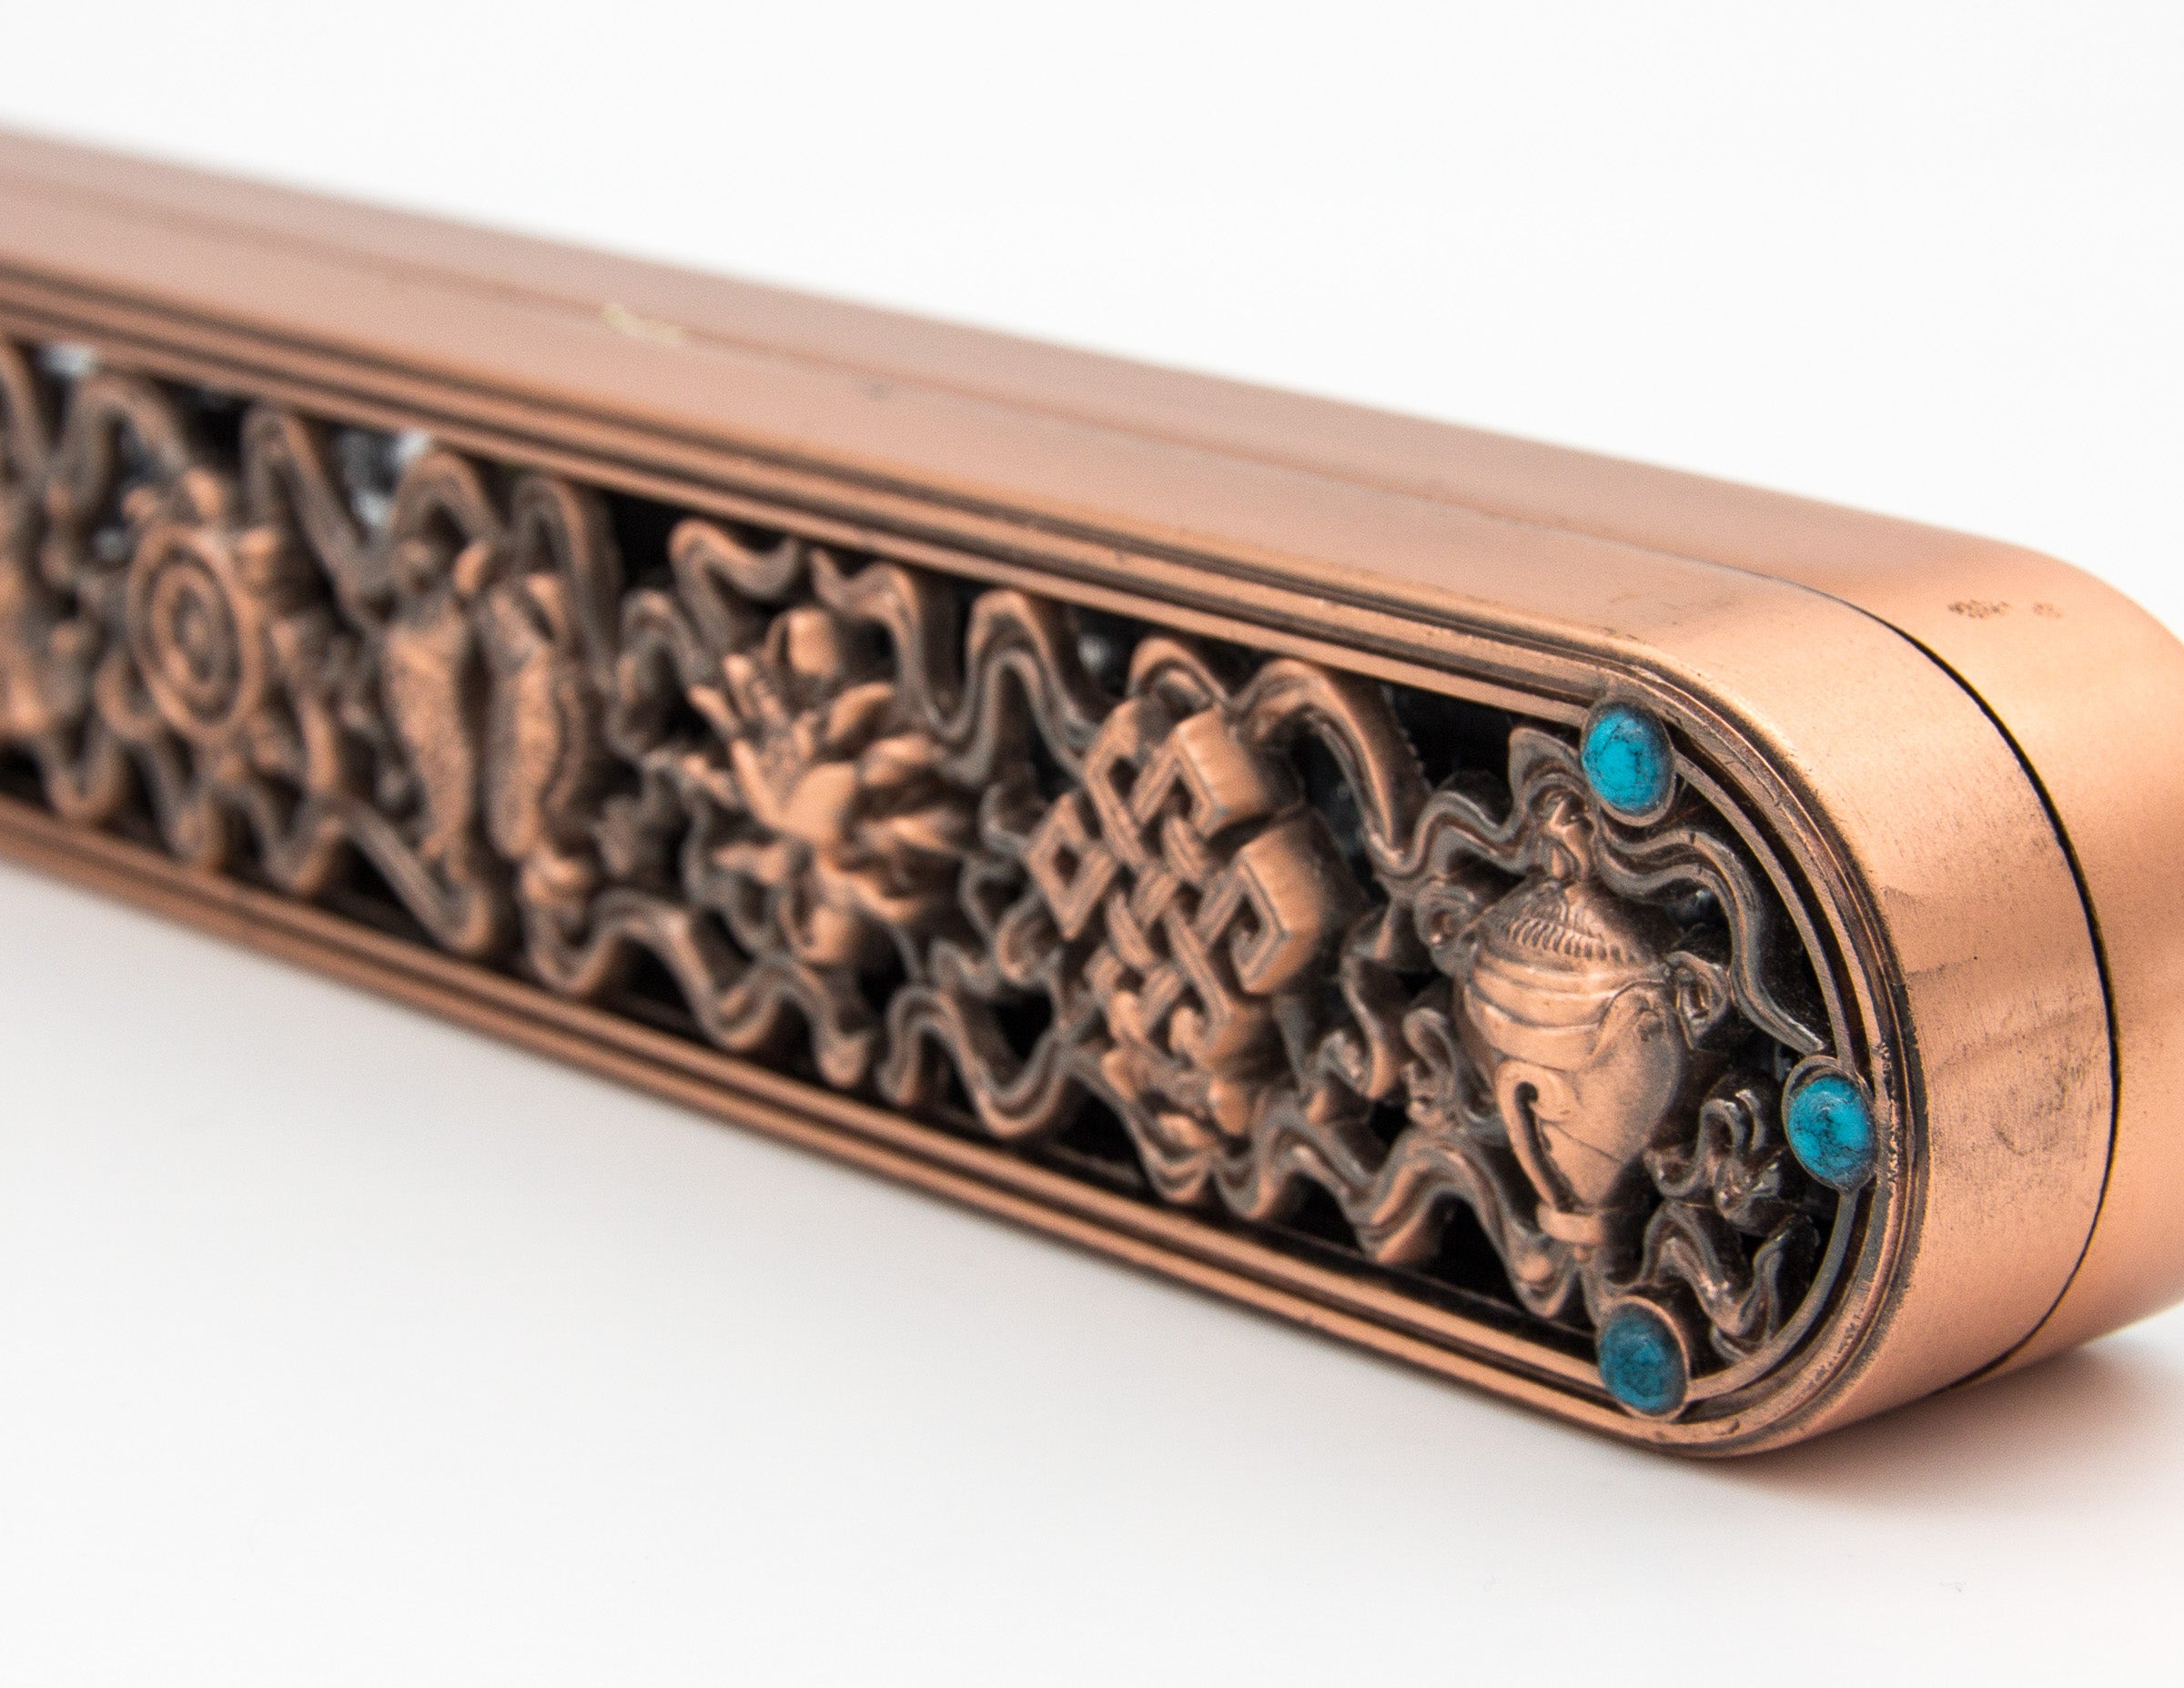 Cylinder Incense Burner